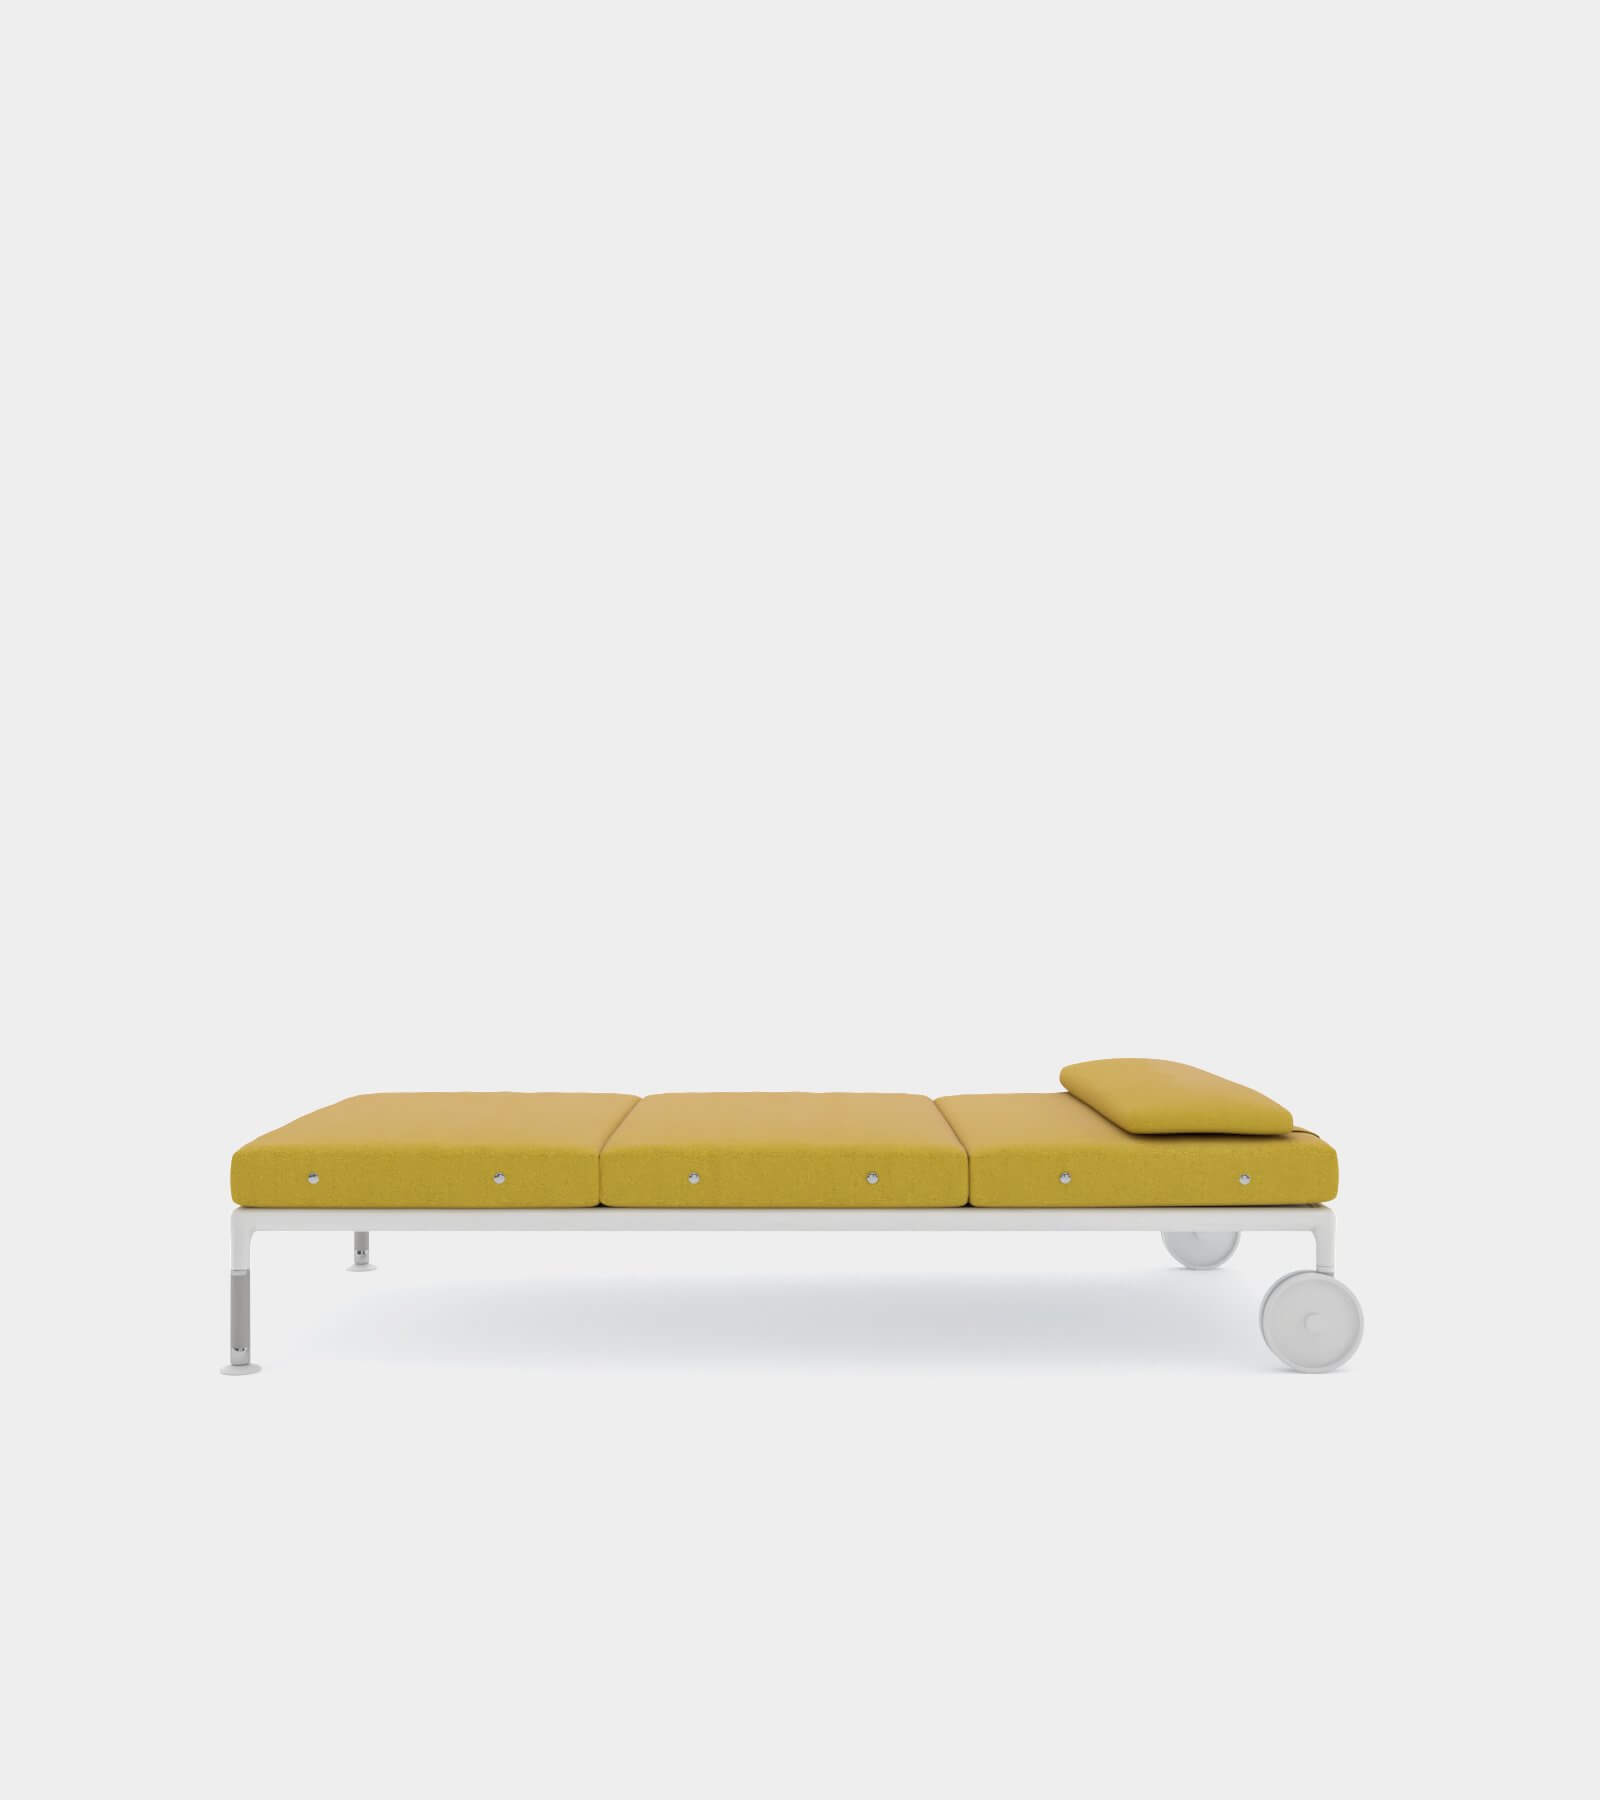 Outdoor chaise longue with wheels - 3D Model